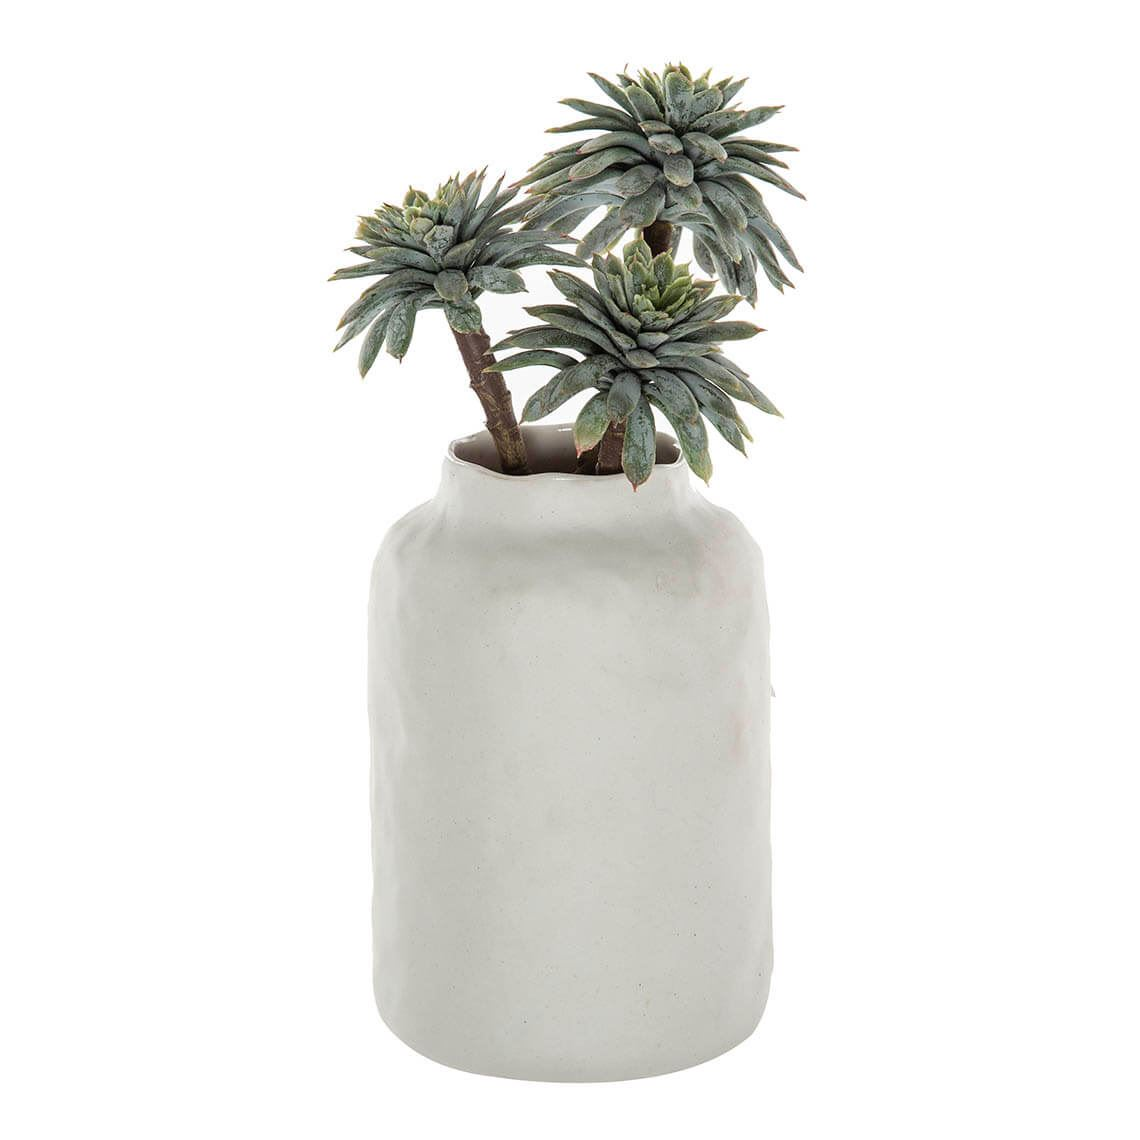 Palm Echeveria Kesia Vase Size W 12cm x D 10cm x H 25cm in White Freedom by Freedom, a Plants for sale on Style Sourcebook